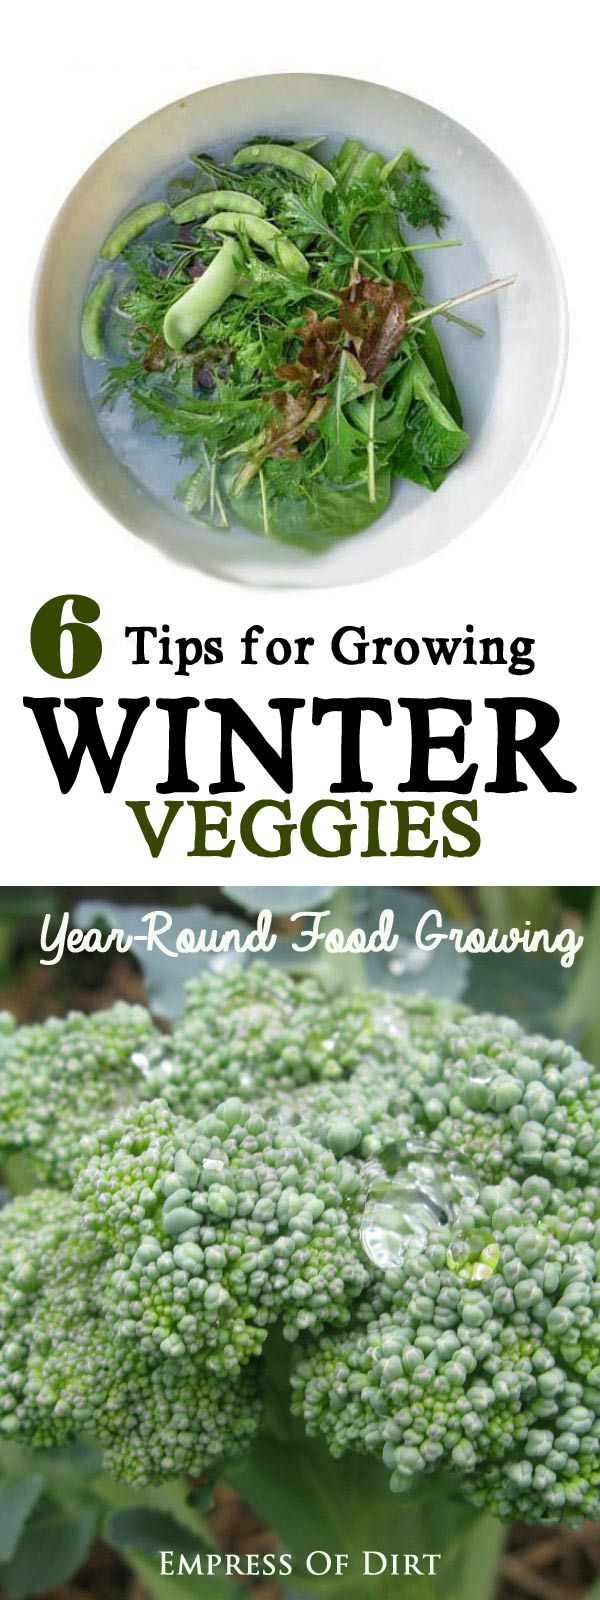 6 tips for growing winter veggies winter gardens and vegetable